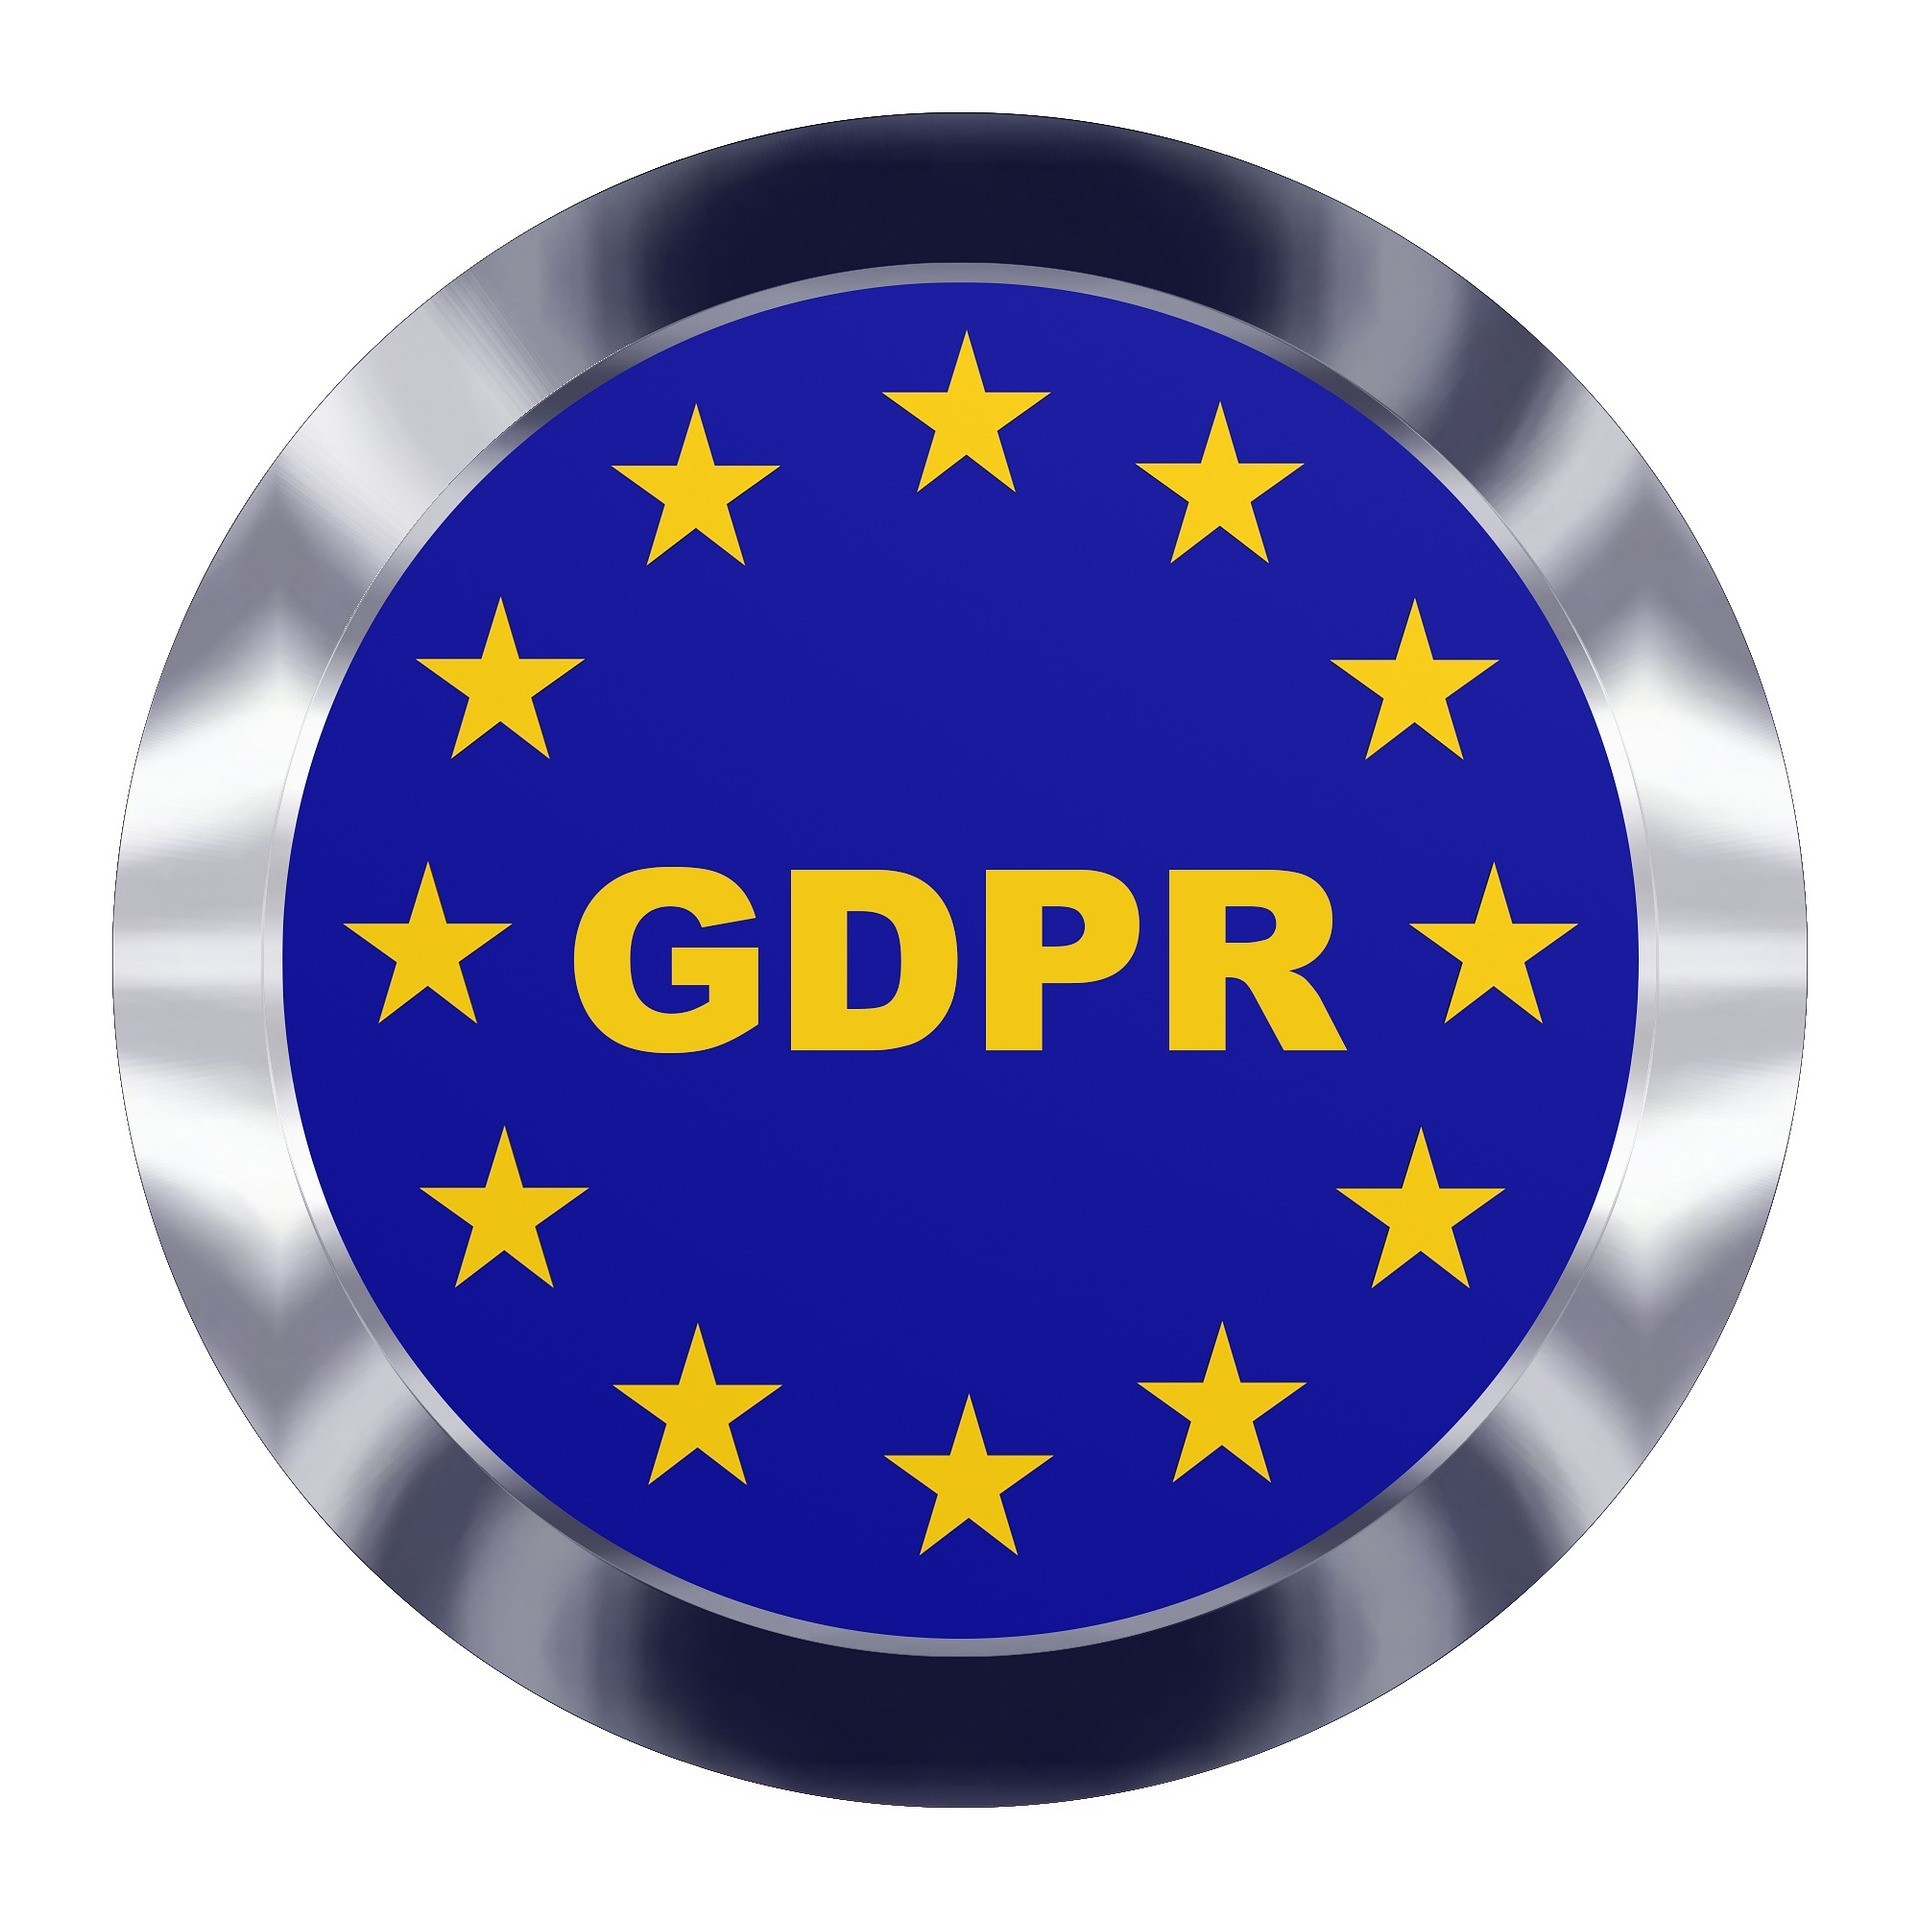 GDPR europe-3220179_1920 Image by Pete Linforth from Pixabay